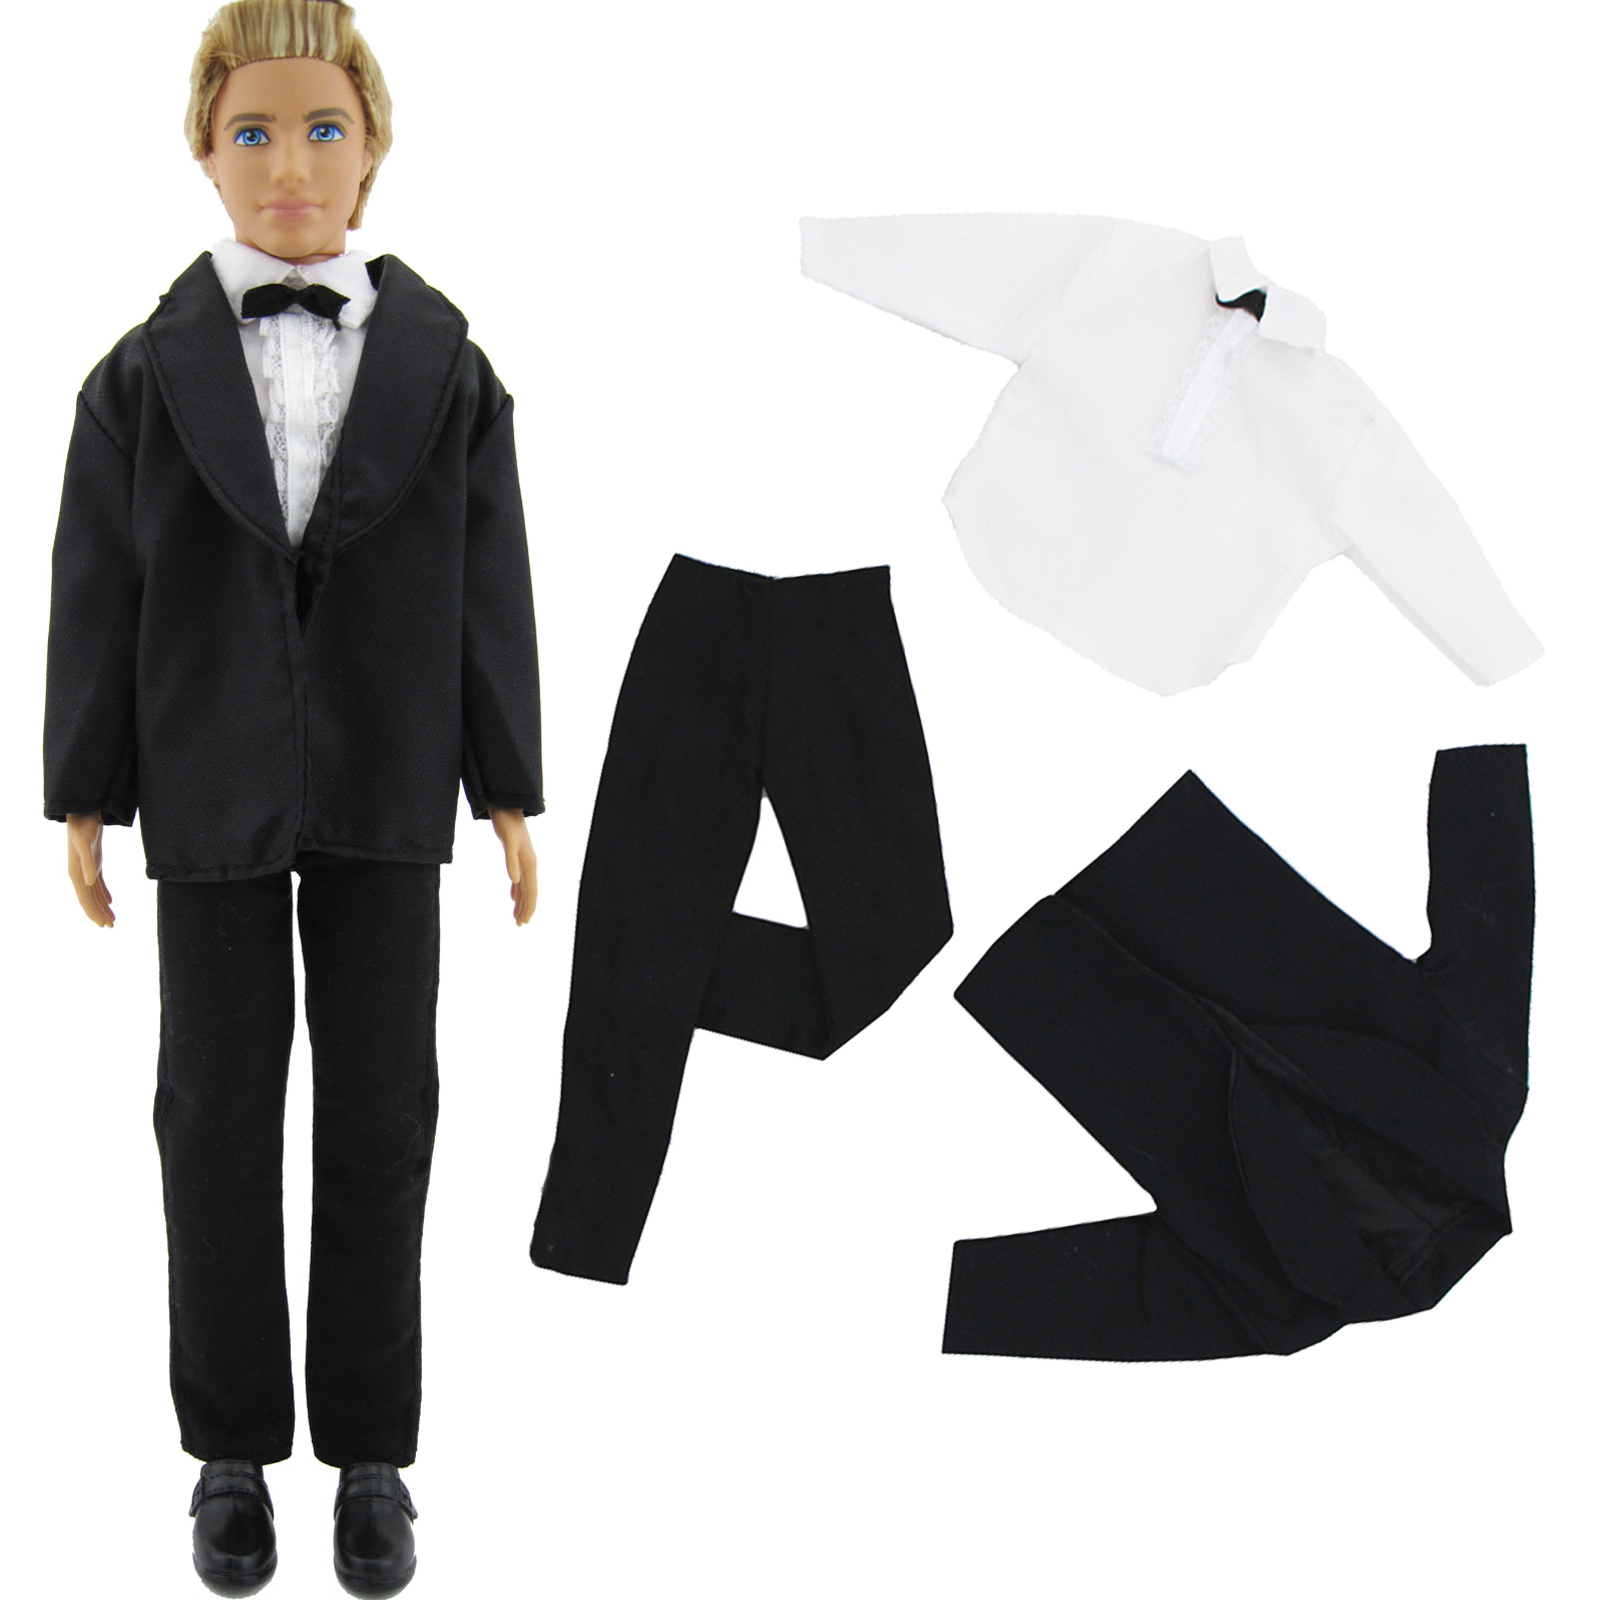 Homemade Doll Clothes-Pretty Dark Salmon Colored Pants fits Ken Doll P3